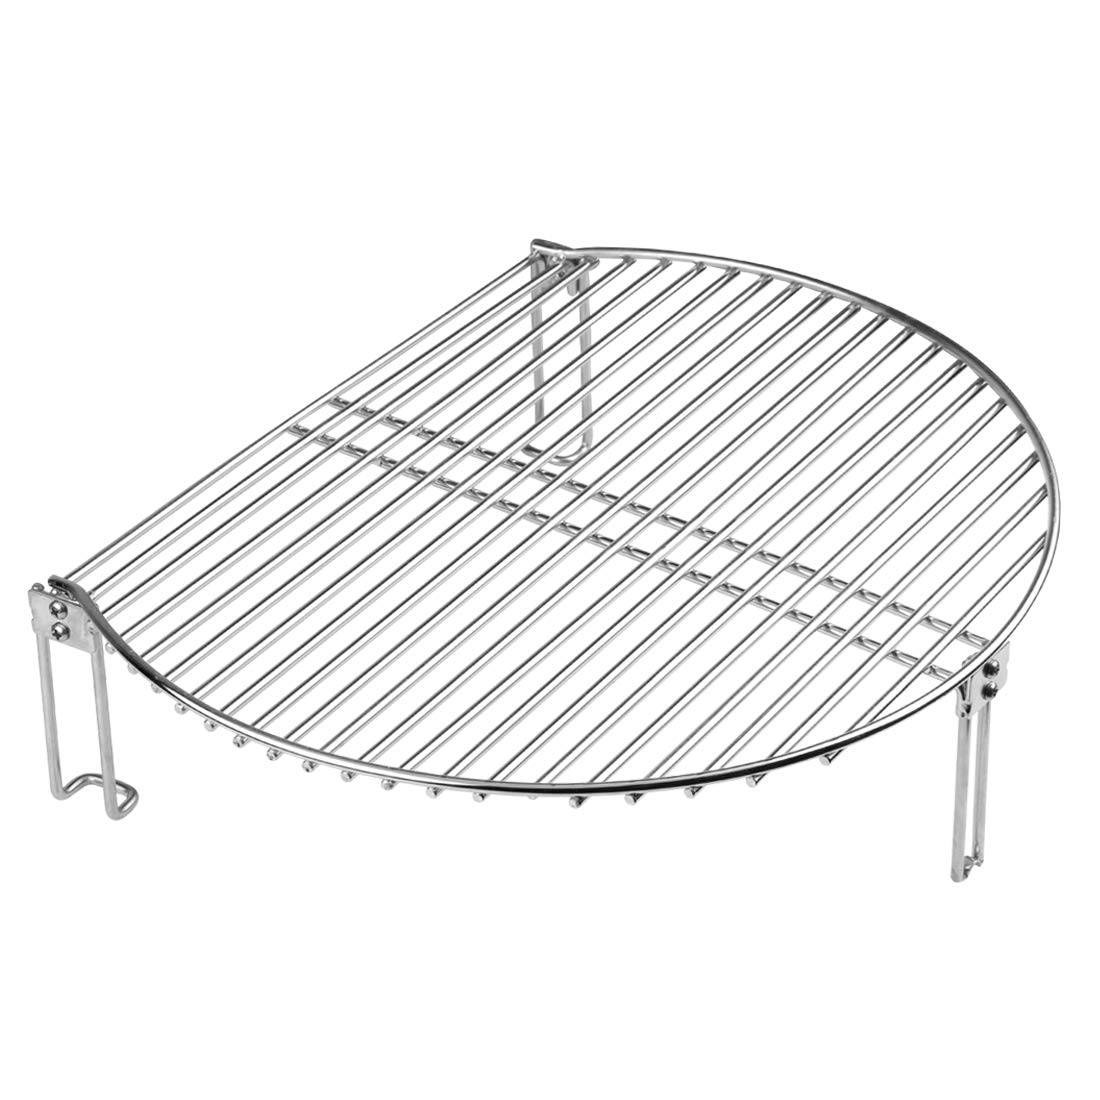 Dracarys Grill Expander Rack Stack Rack for Big Green Egg Stainless Steel BBQ Lover Gifts Fit Large & XL Big Green Egg, Kamado Joe,18'' or Bigger Diameter Grill,Increase Grilling Surface by Dracarys